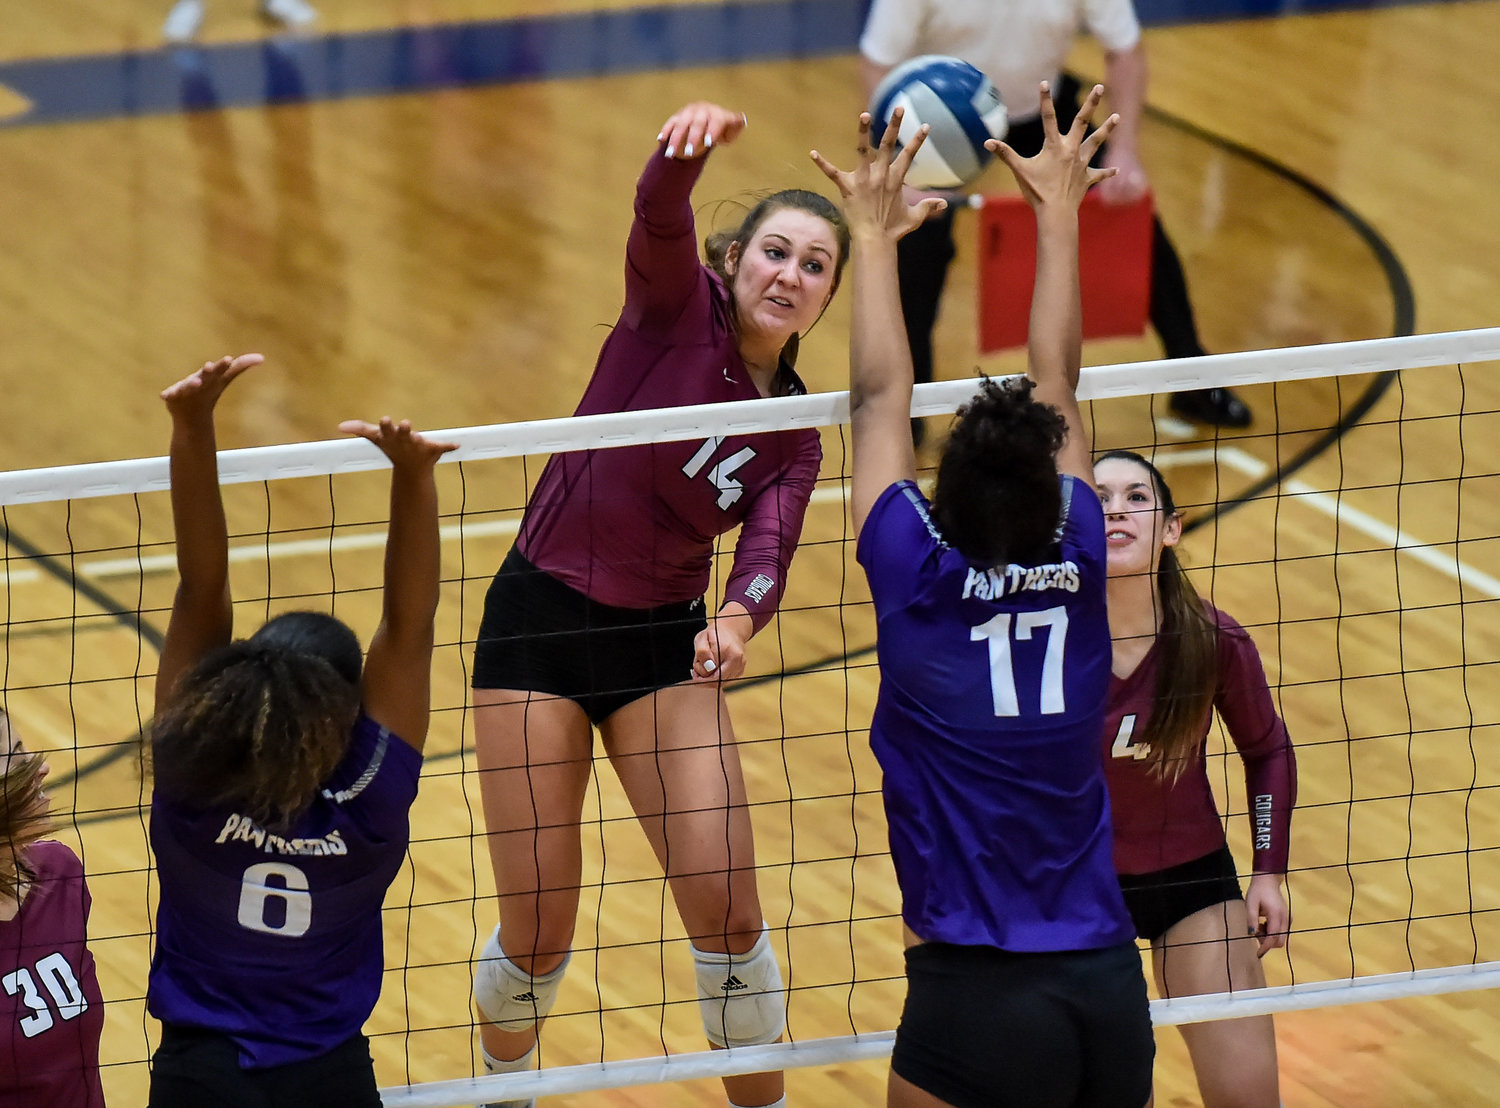 Katy Tx. Nov. 12, 2019: Cinco Ranch's Danyle Courtley (14) delivers the shot as Ridge Points Alexis Roberson (17) attempts the block during the Regional Quarter Final High School Volleyball playoff match between Cinco Ranch and Ridge Point at Wheeler Field House.  (Photo by Mark Goodman / Katy Times)